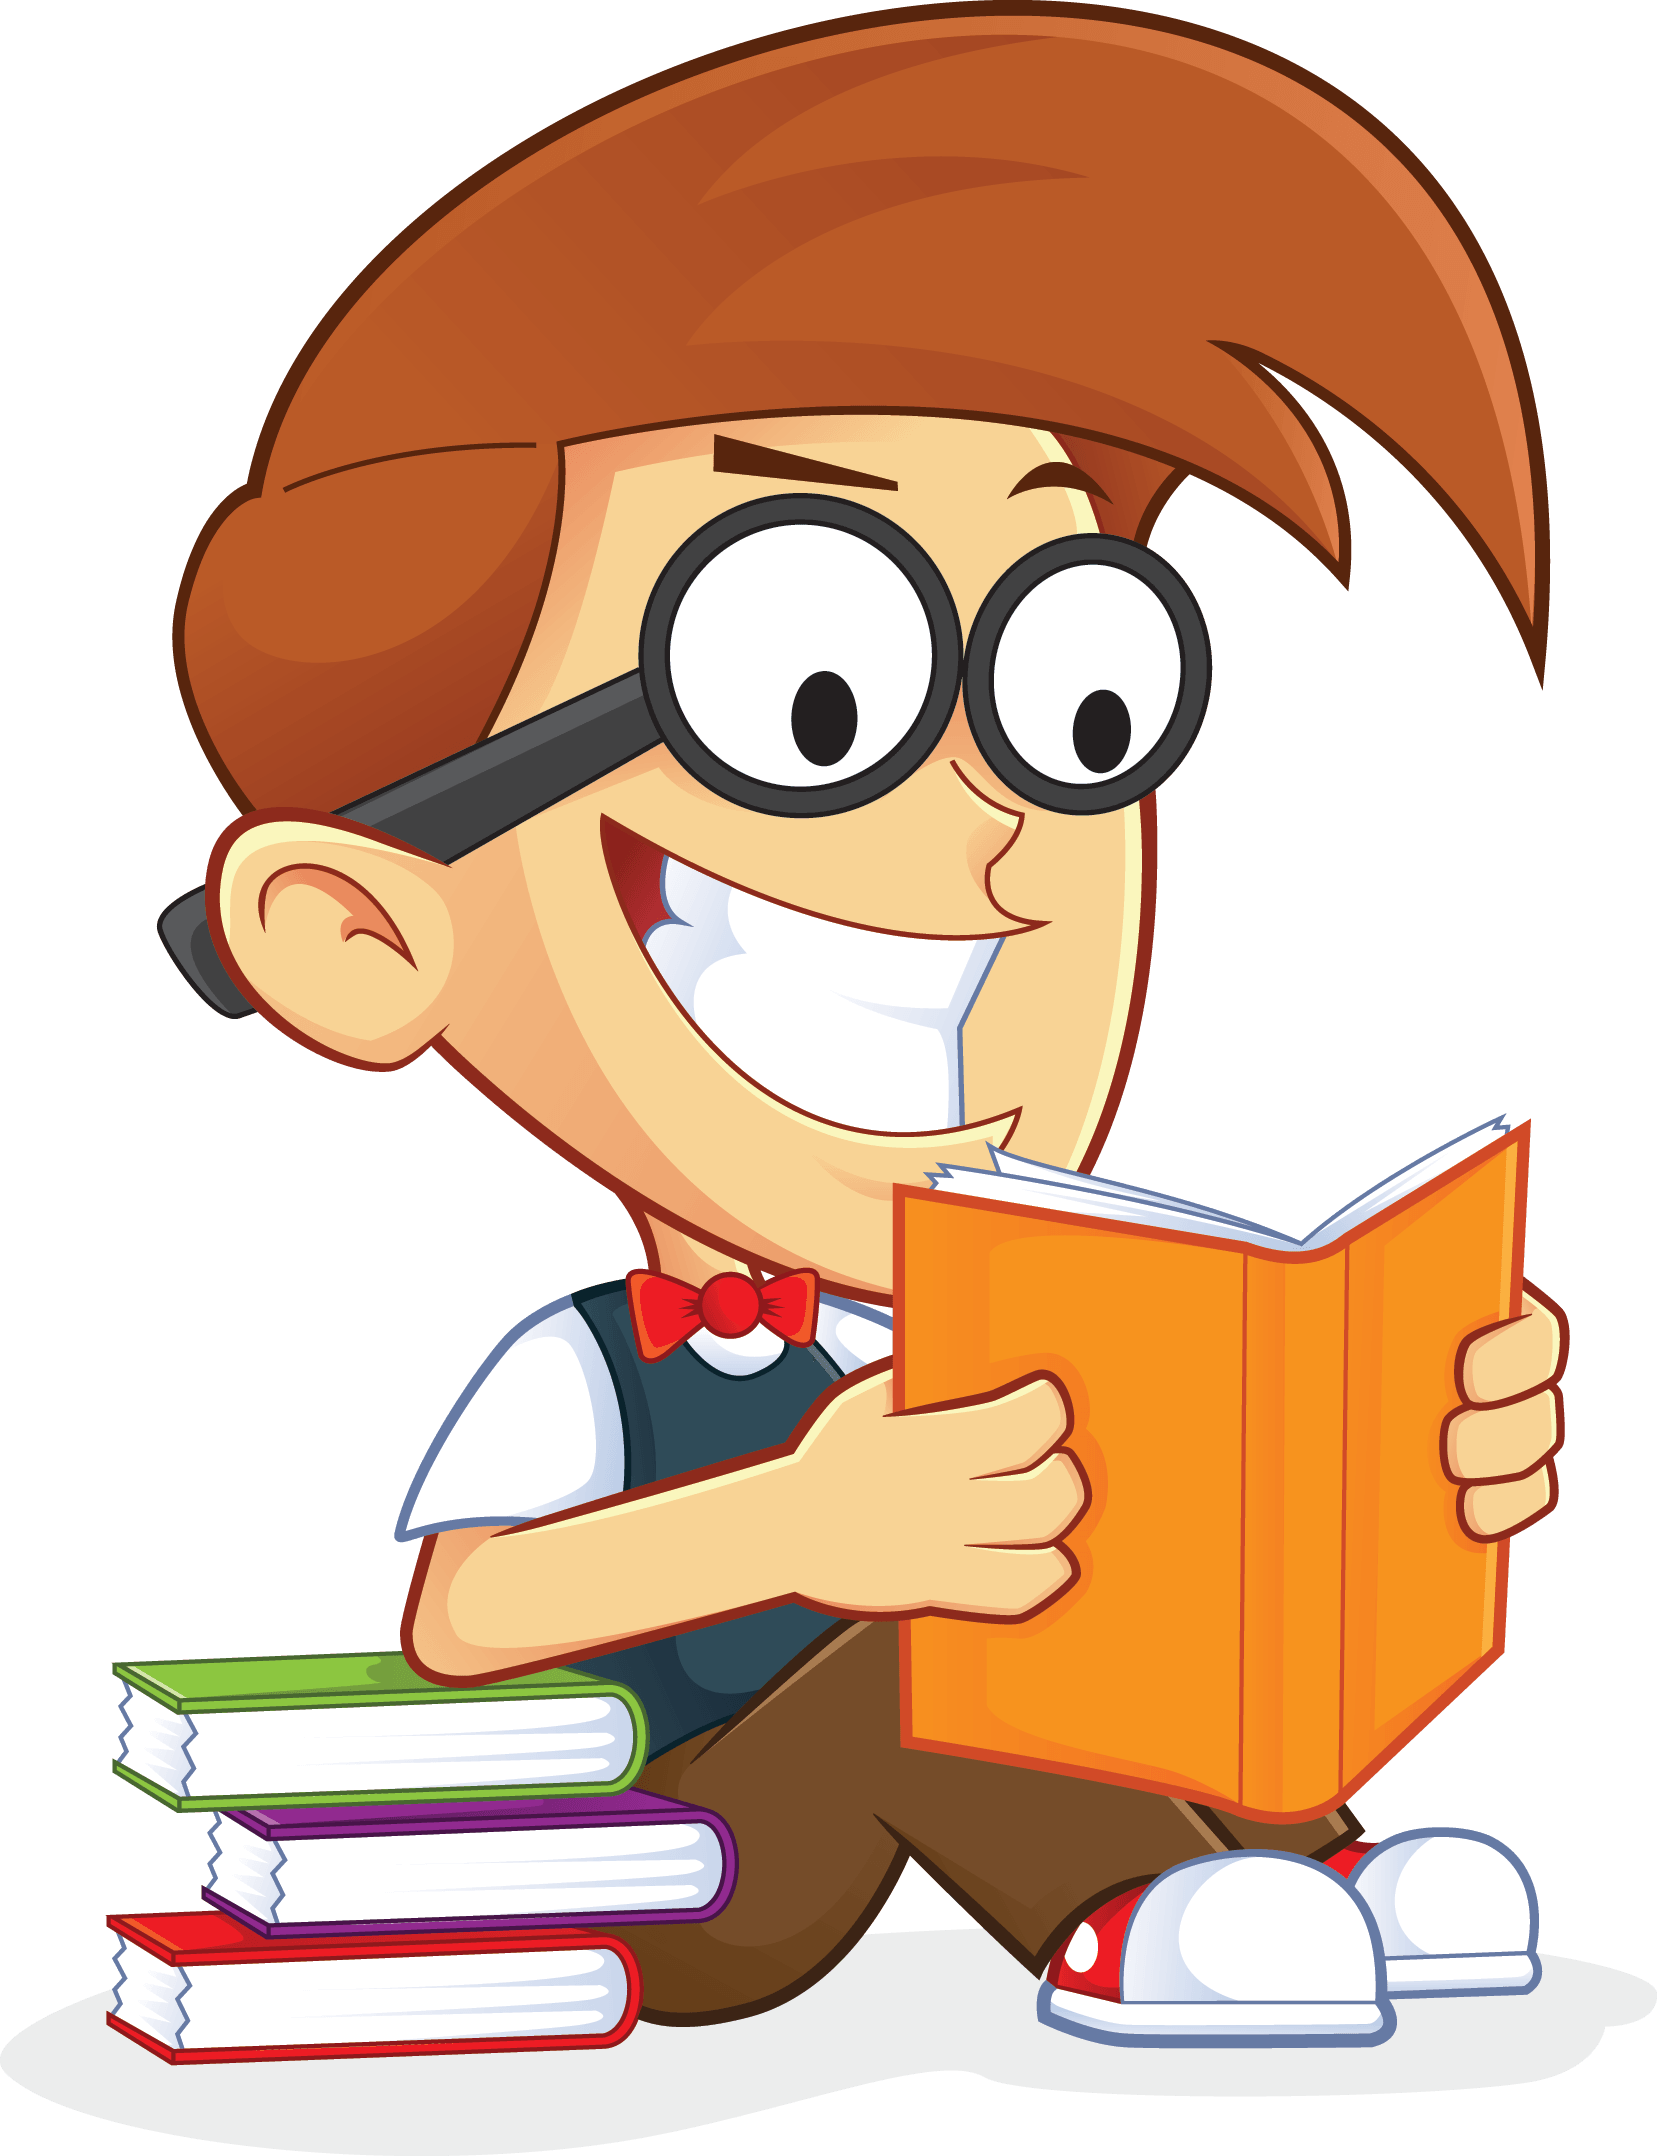 Student reading a book clipart clip free stock Free Nerd Geek Reading Book People High Resolution Clip Art ... clip free stock